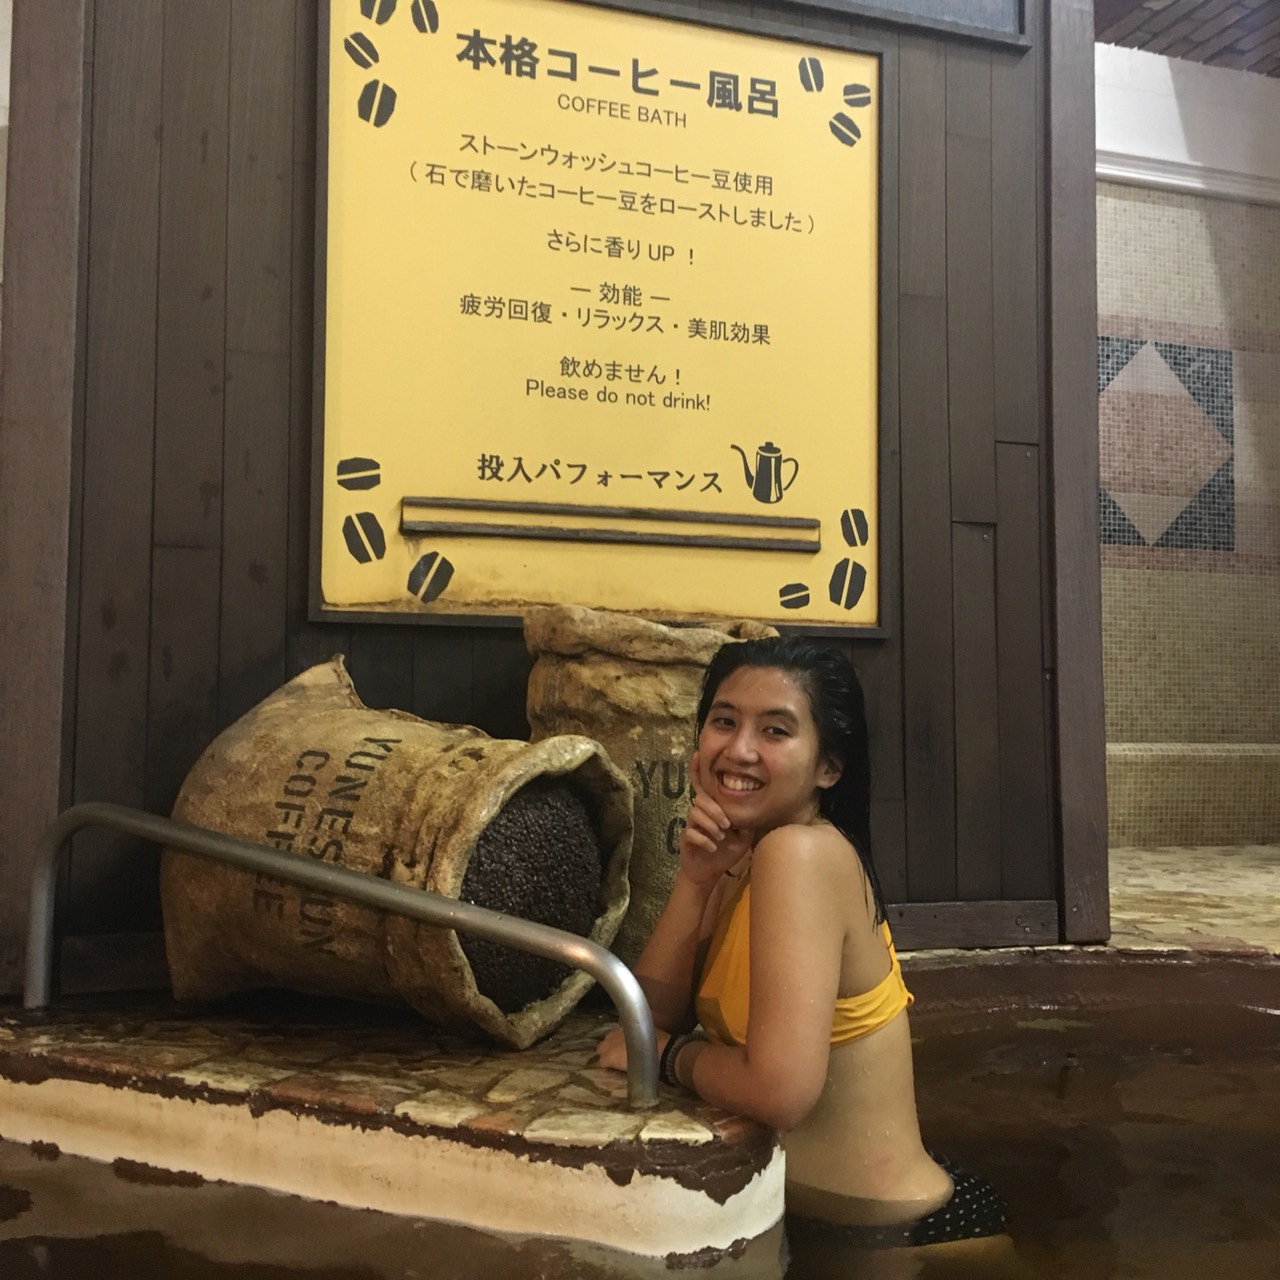 "A person posing in a bathtub with coffee bean sacs and a sign that says ""Coffee Bath"" in the background"